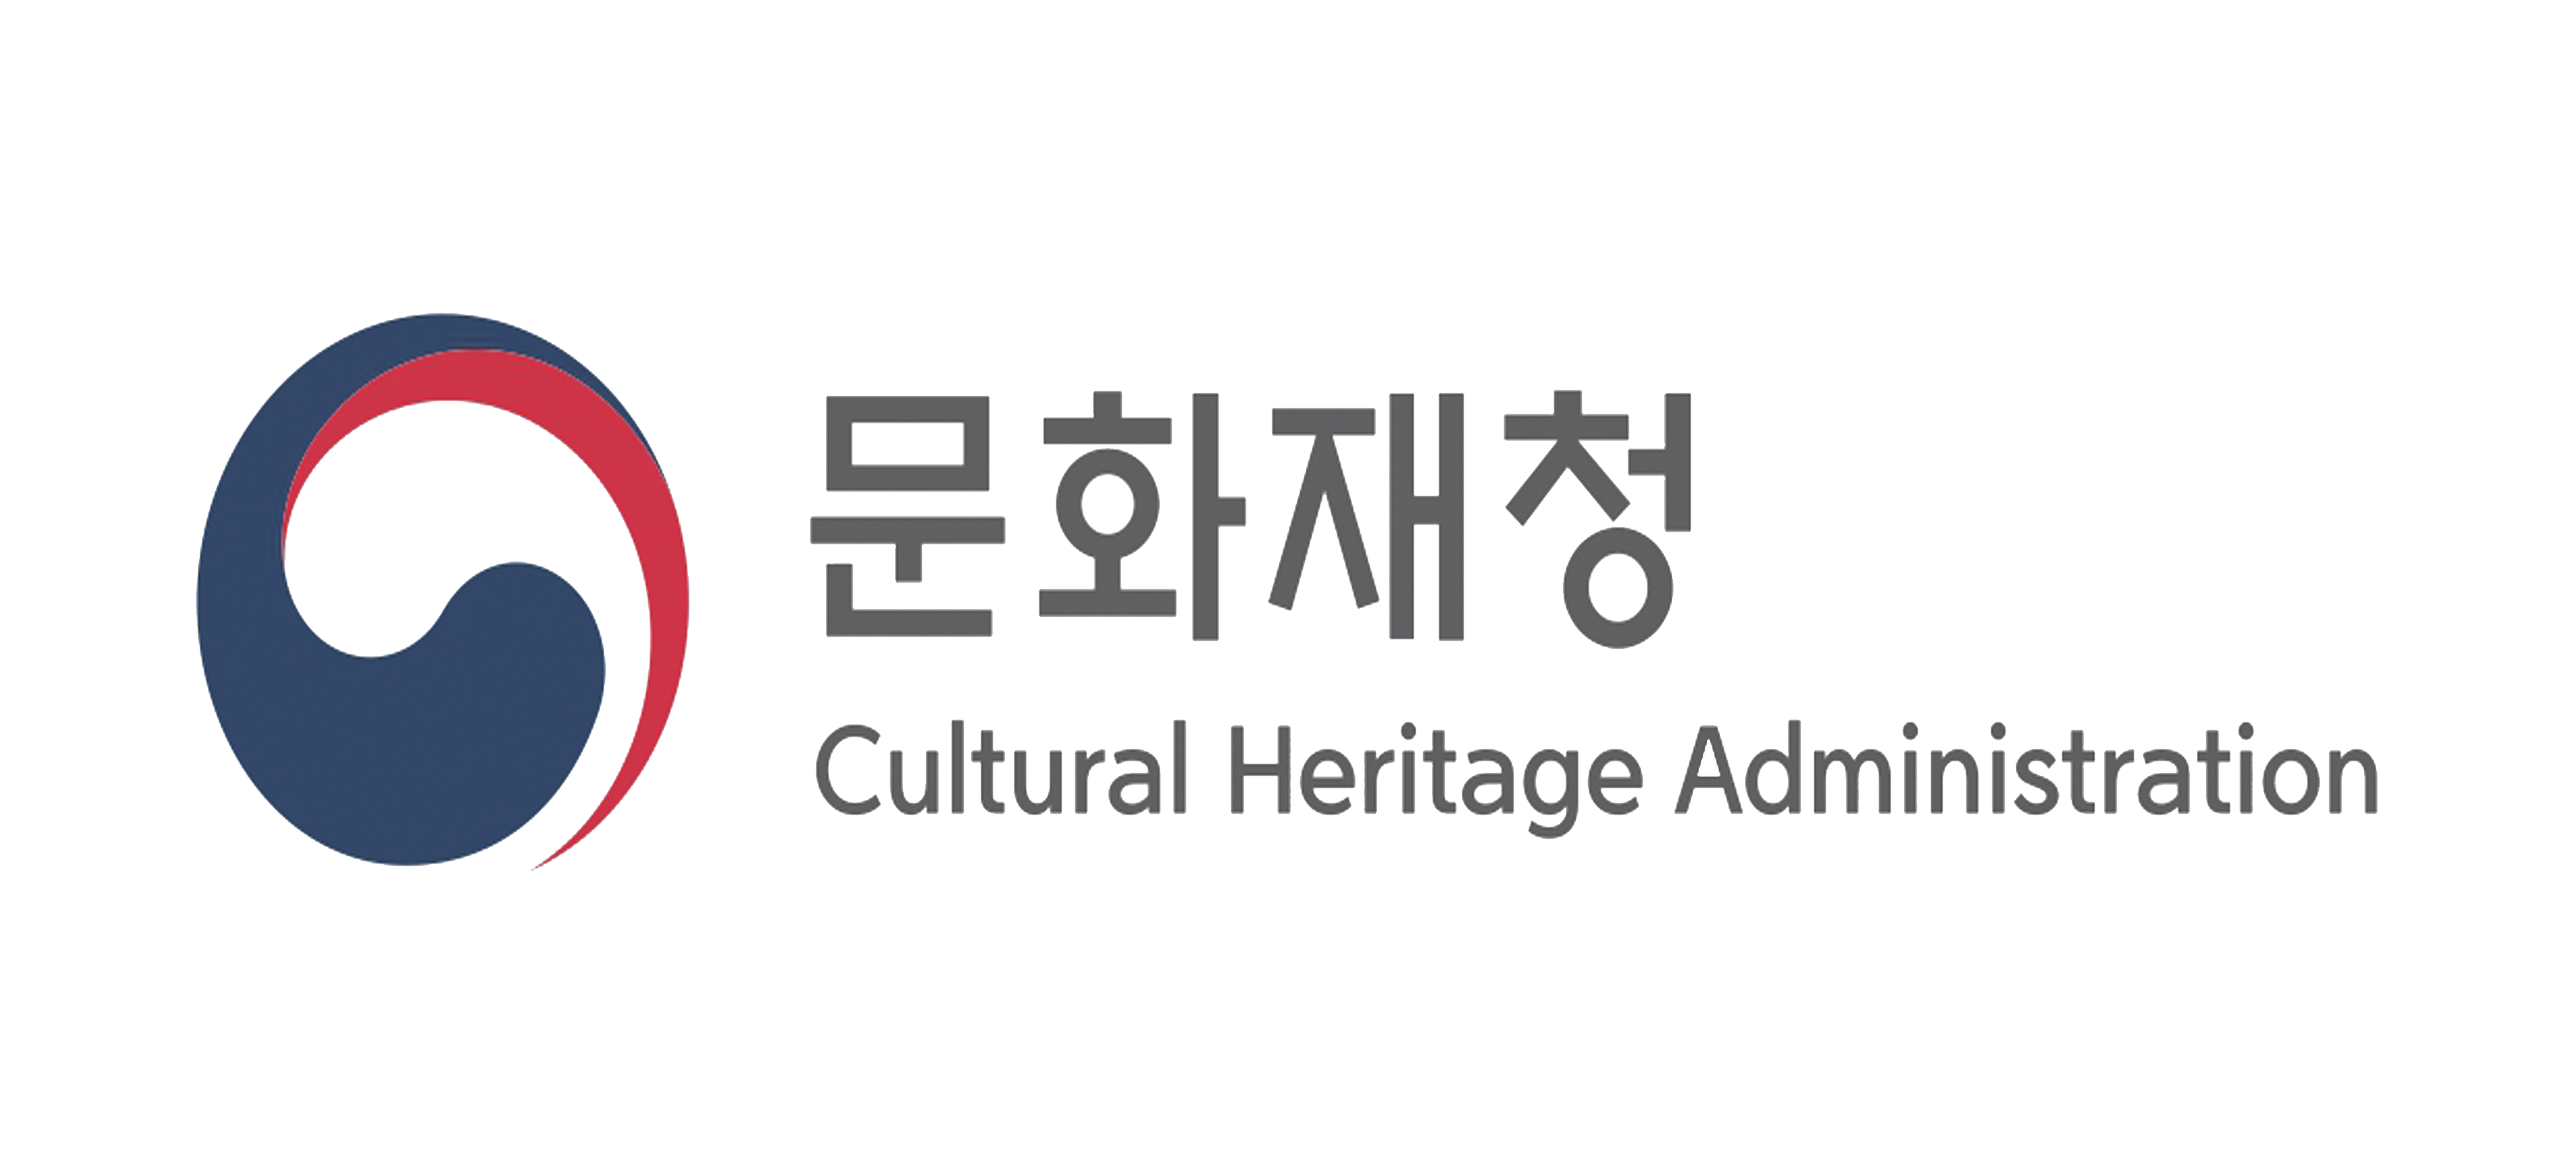 National Research Institute of Cultural Heritage